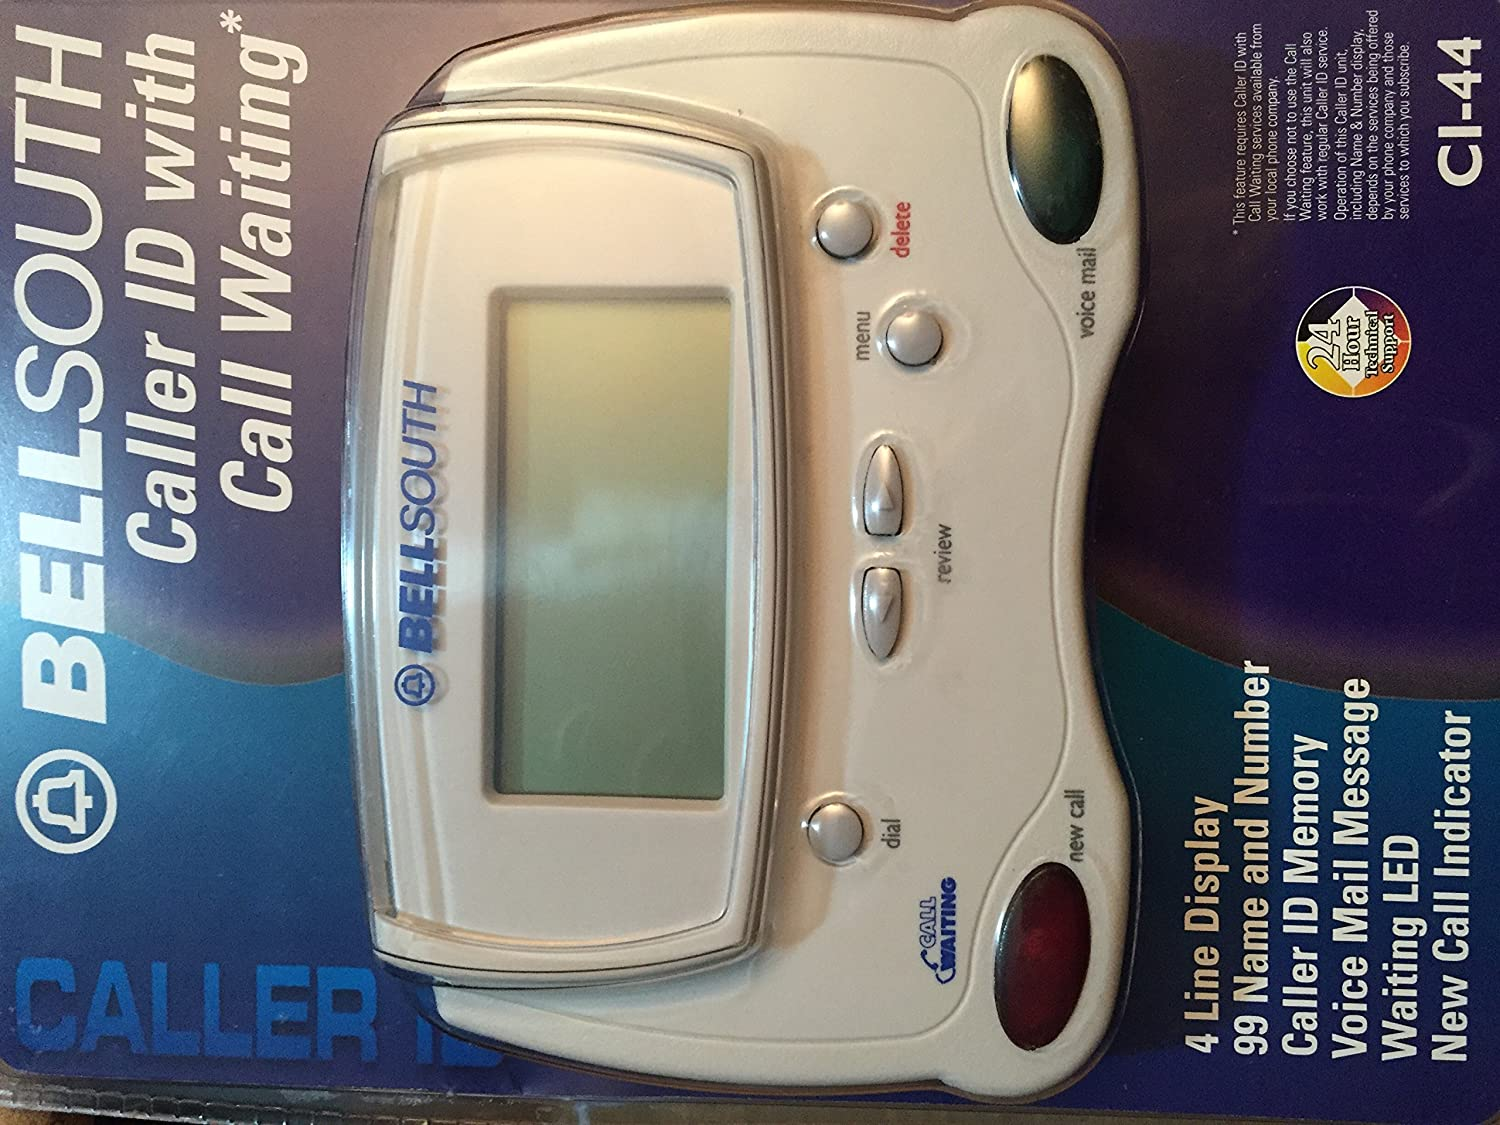 Bellsouth Caller ID with Call Waiting CI-44: Electronics